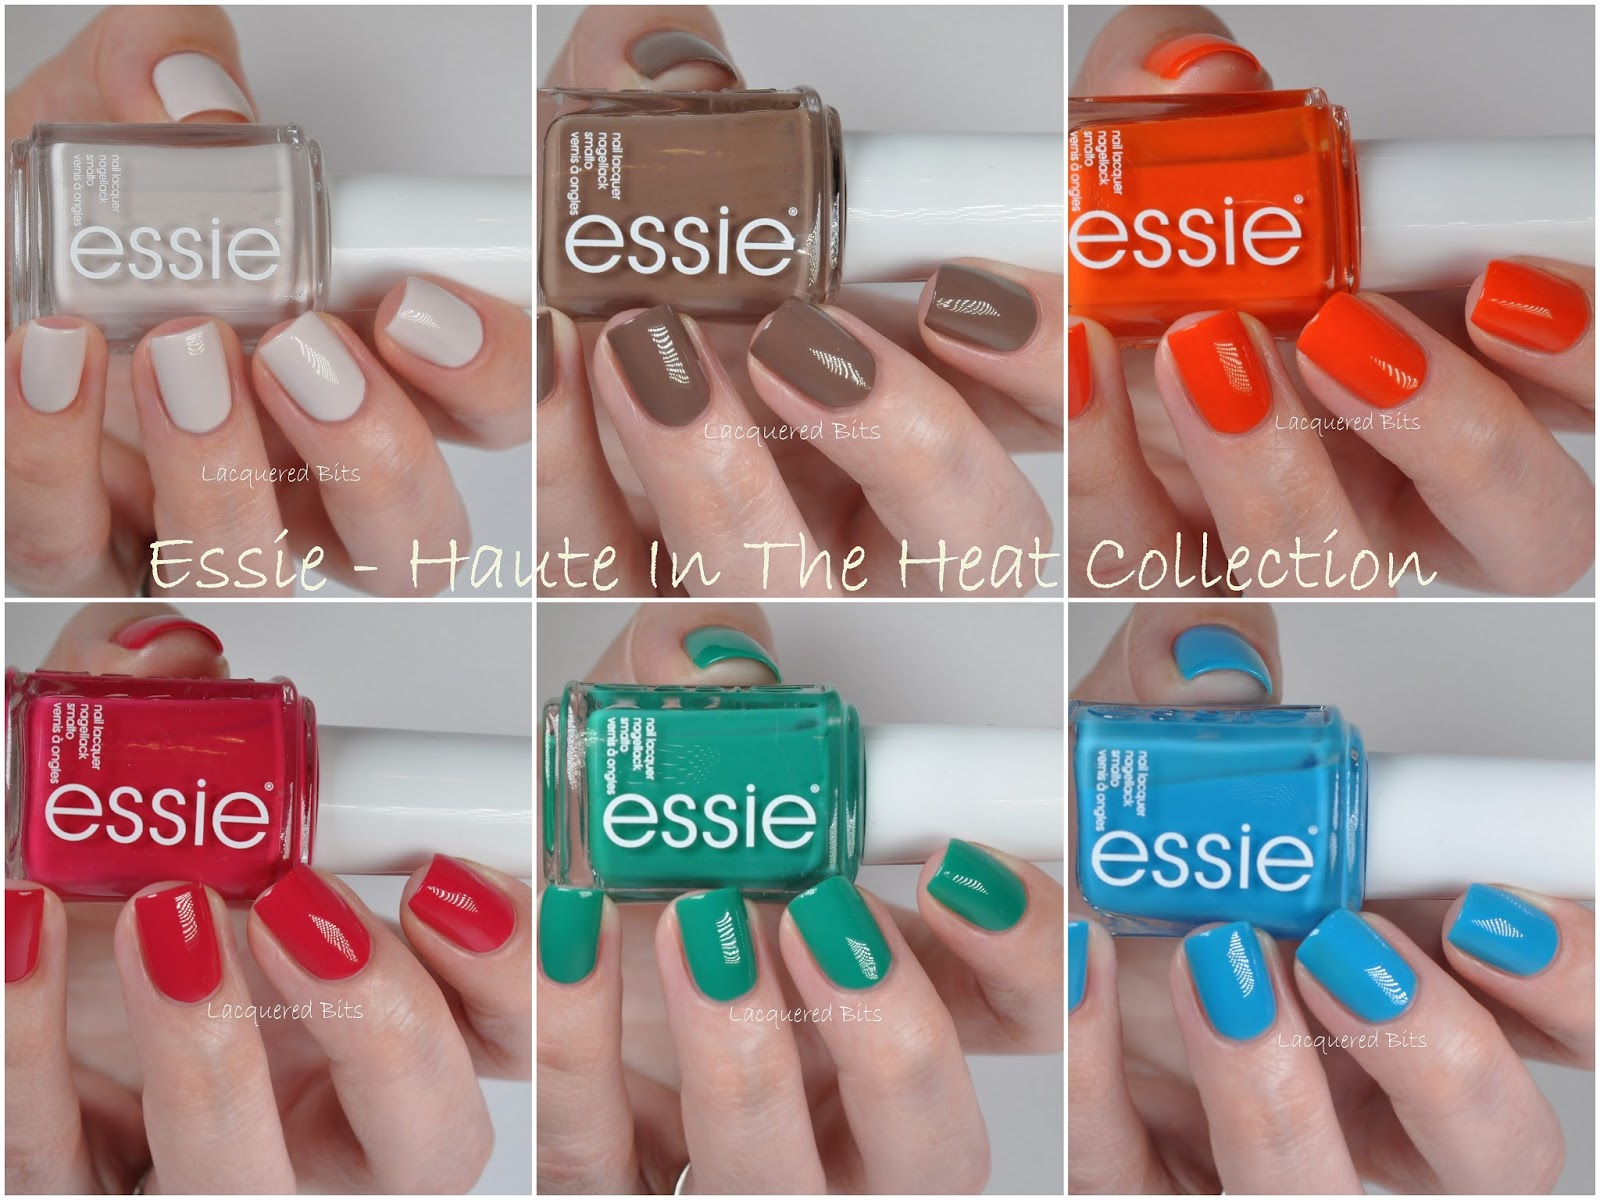 Essie Summer 2014 Haute In The Heat Collection